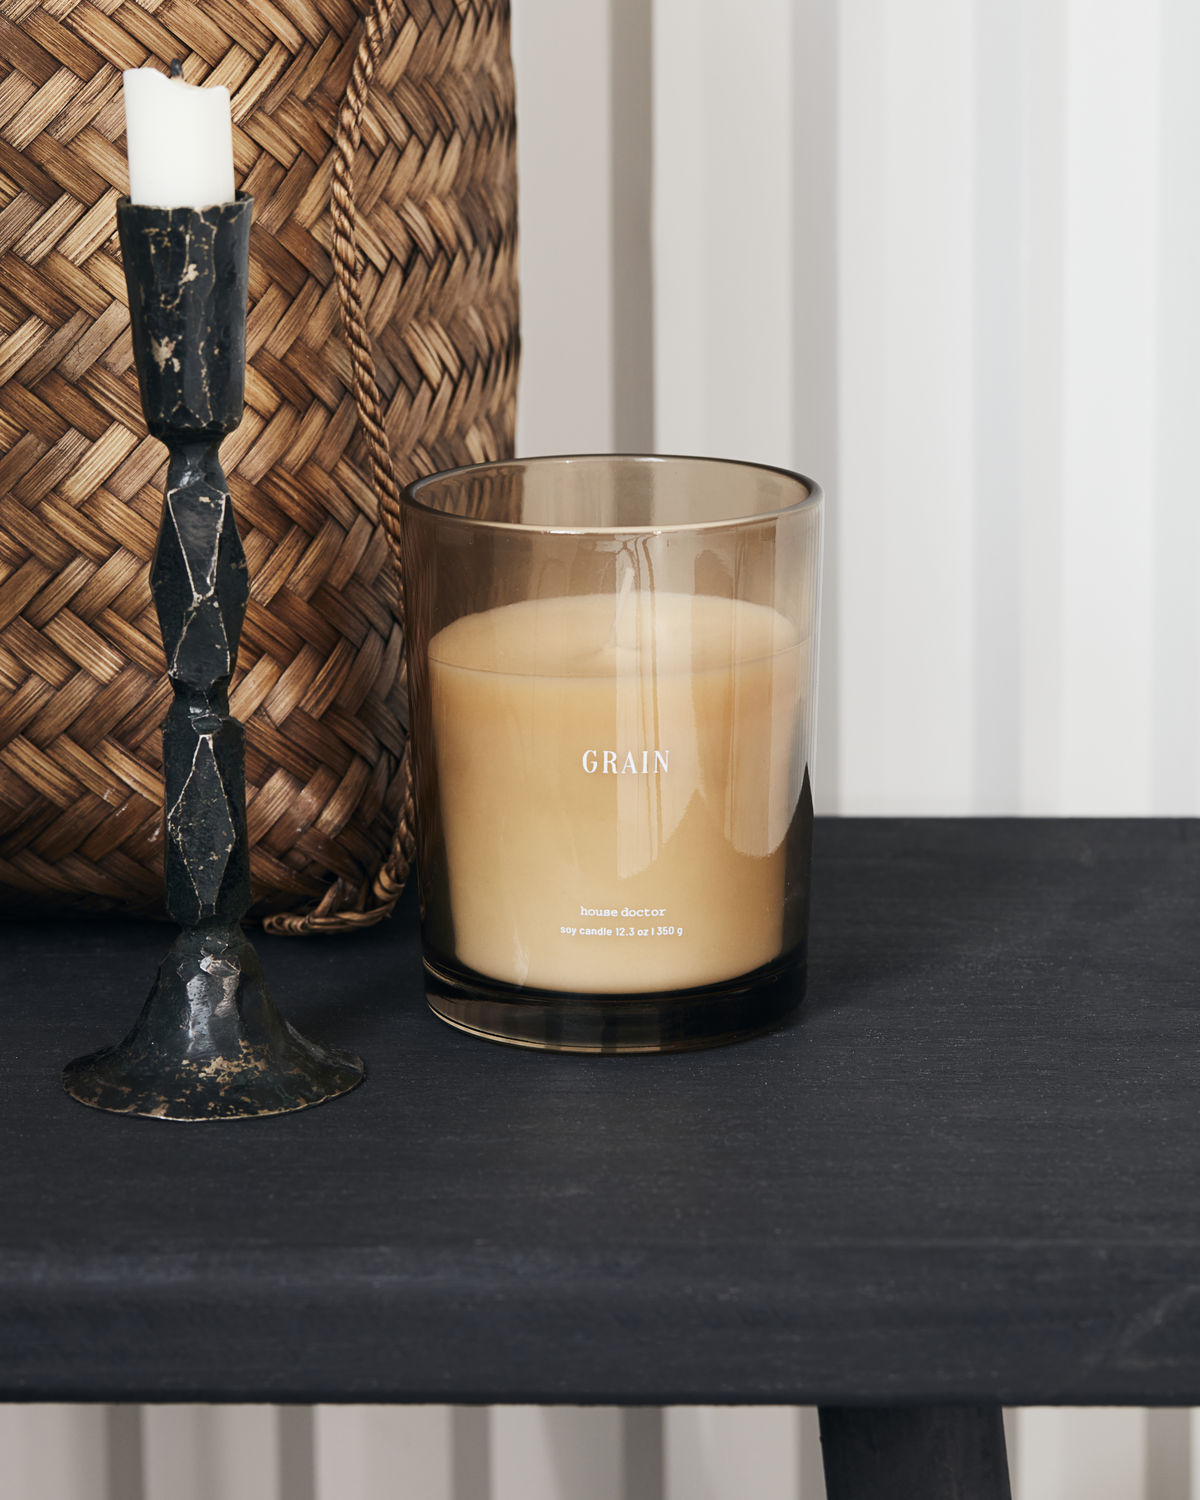 Scented candle, Grain, Brown, Burning time: 52 hours